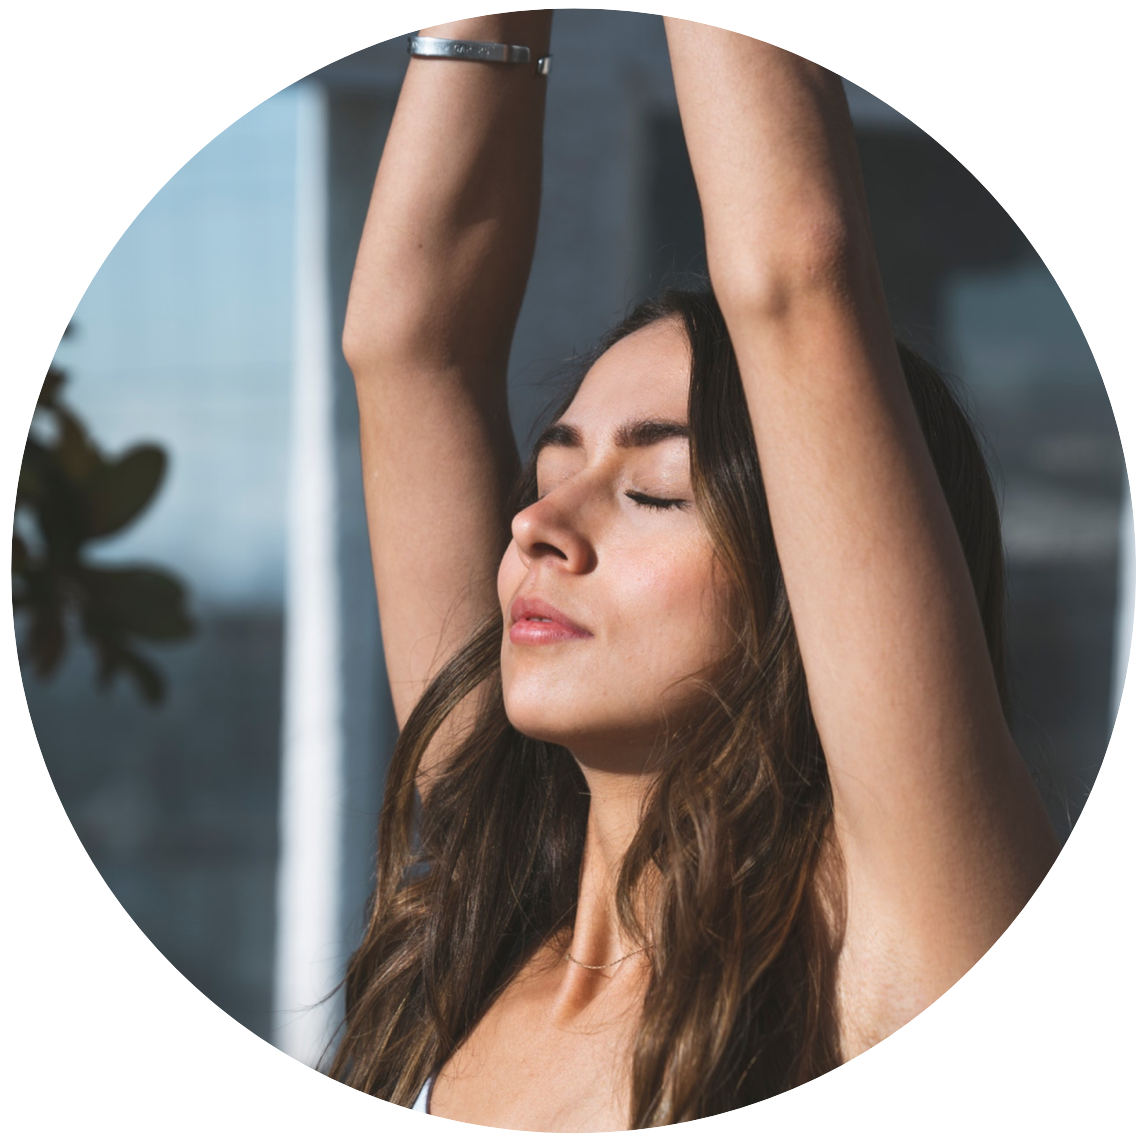 Woman with hands stretched above her head in the gesture of connecting to her inneWoman with hands stretched above head breathes calmly in gesture of connection with her higher self and wisdomr self